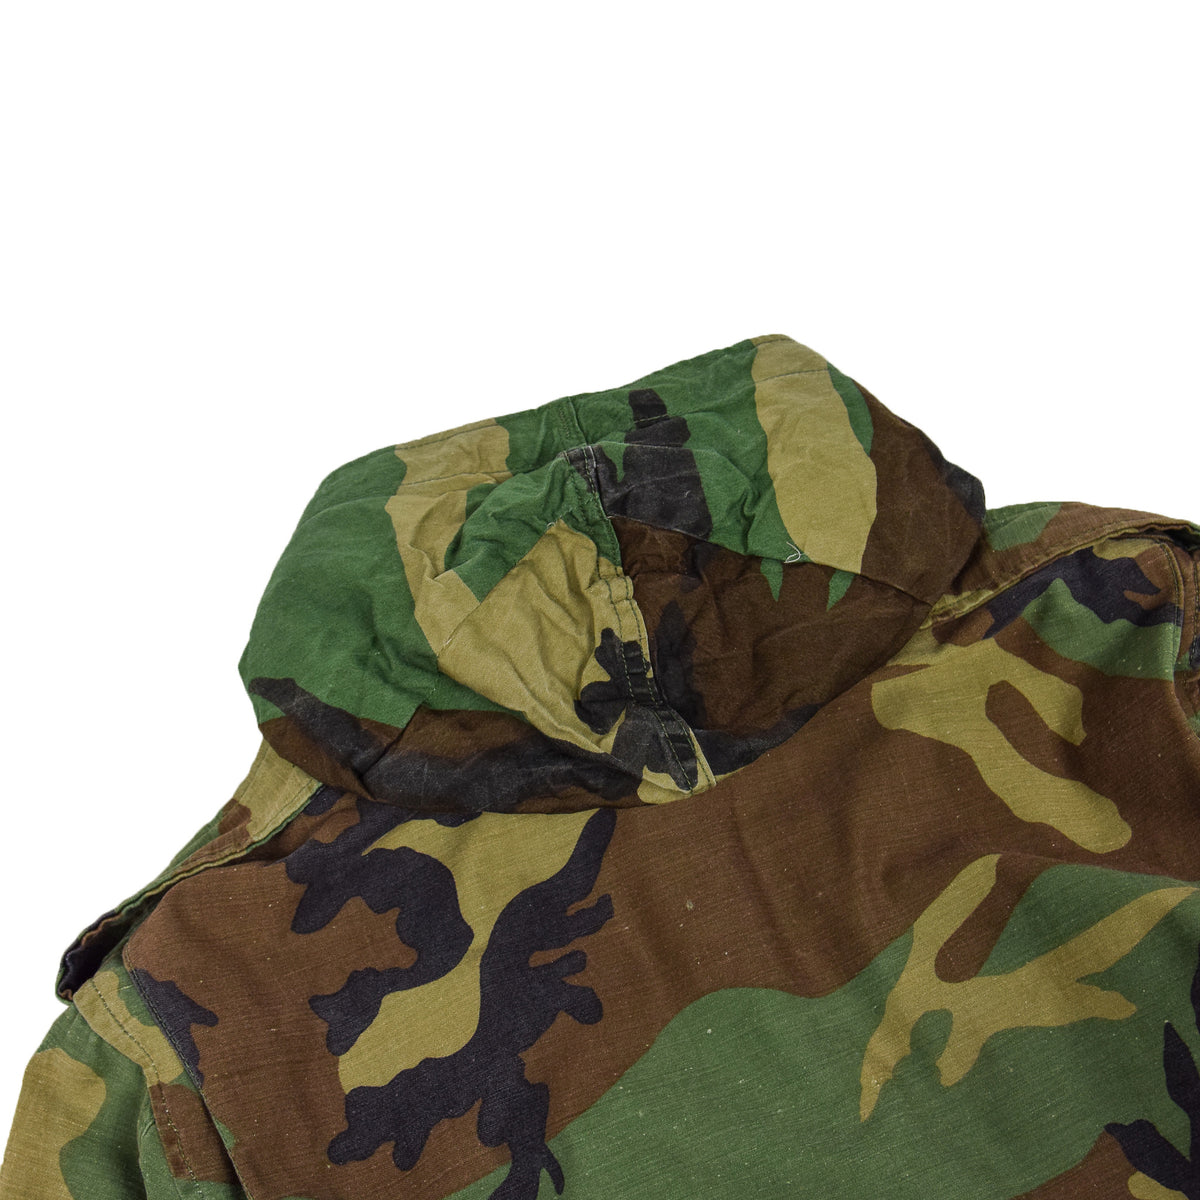 Vintage 80s US Army M-65 Woodland Camouflage Field Coat Military Jacket S Long lining